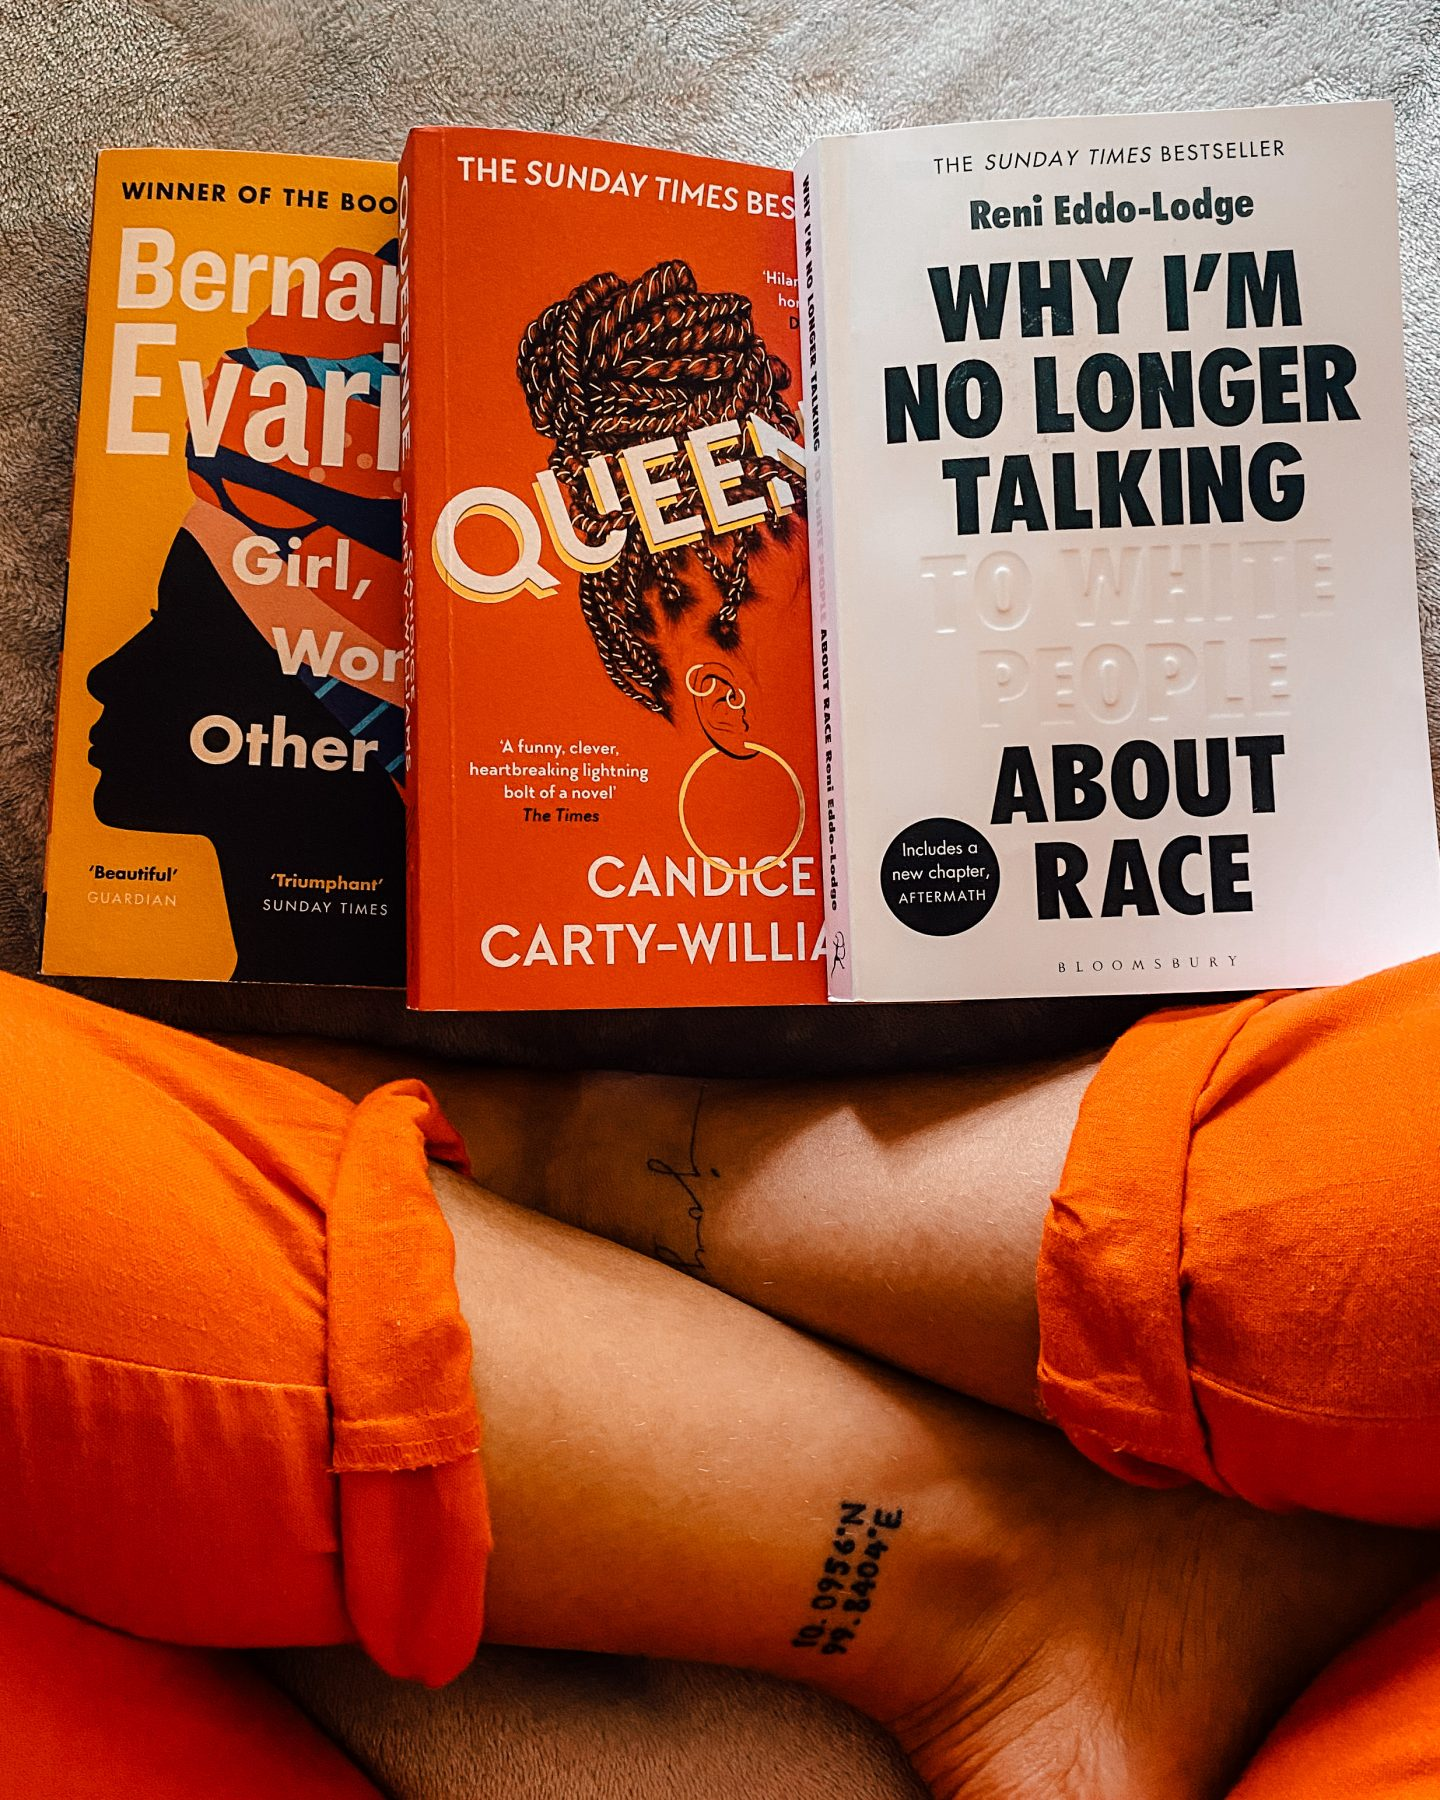 Girl, Woman, Other, Queenie and Why I'm no longer talking about race - books and my sat cross legged.